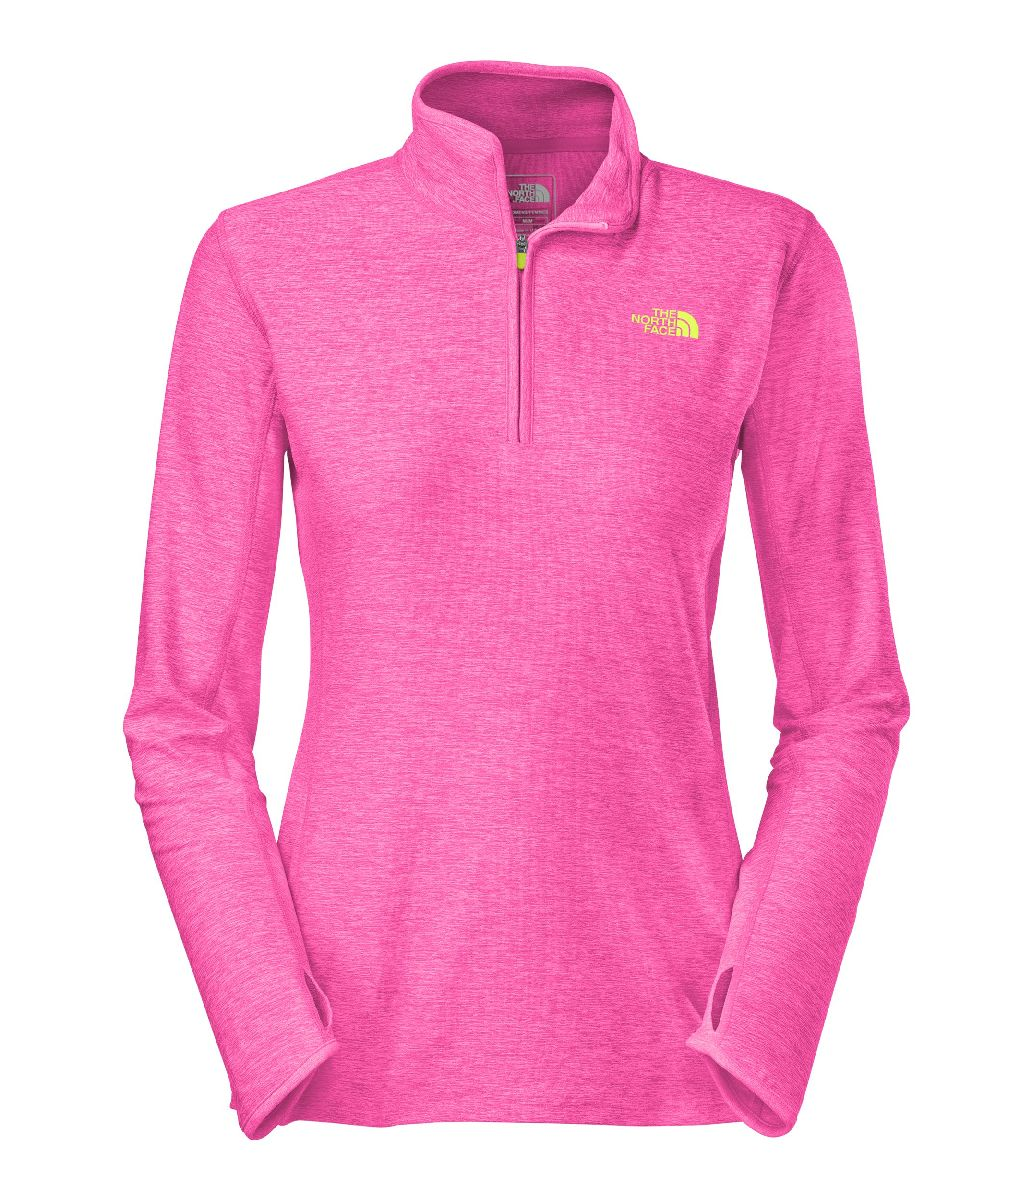 The North Face Motivation 1 4 Zip Workout Shirt Women's Size L GloPinkHeather U.S.A. & Canada